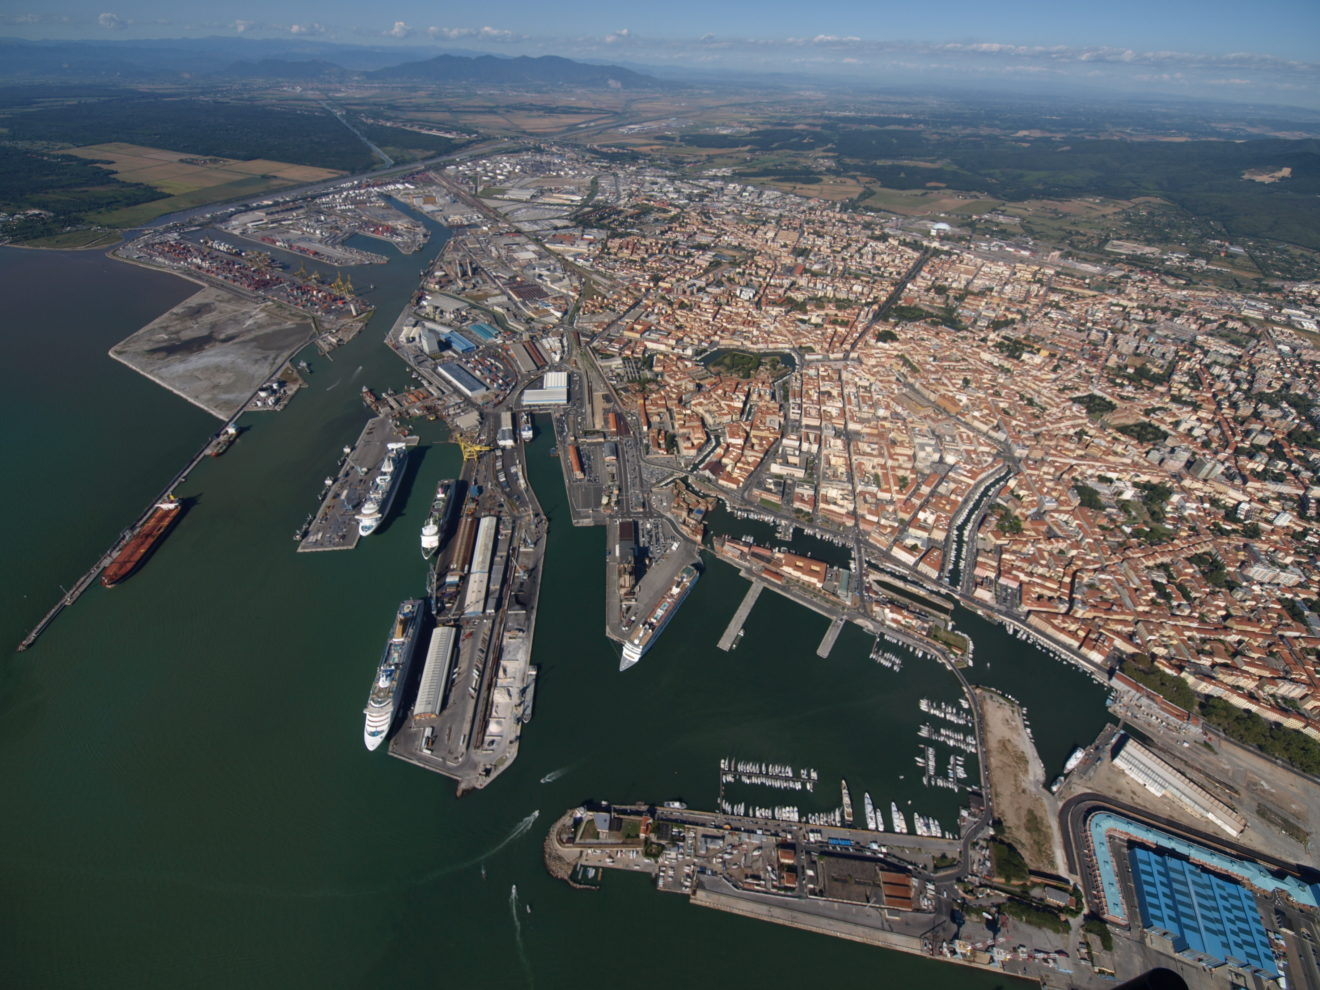 Agreement Signed For Improved Intermodality At Livorno Port